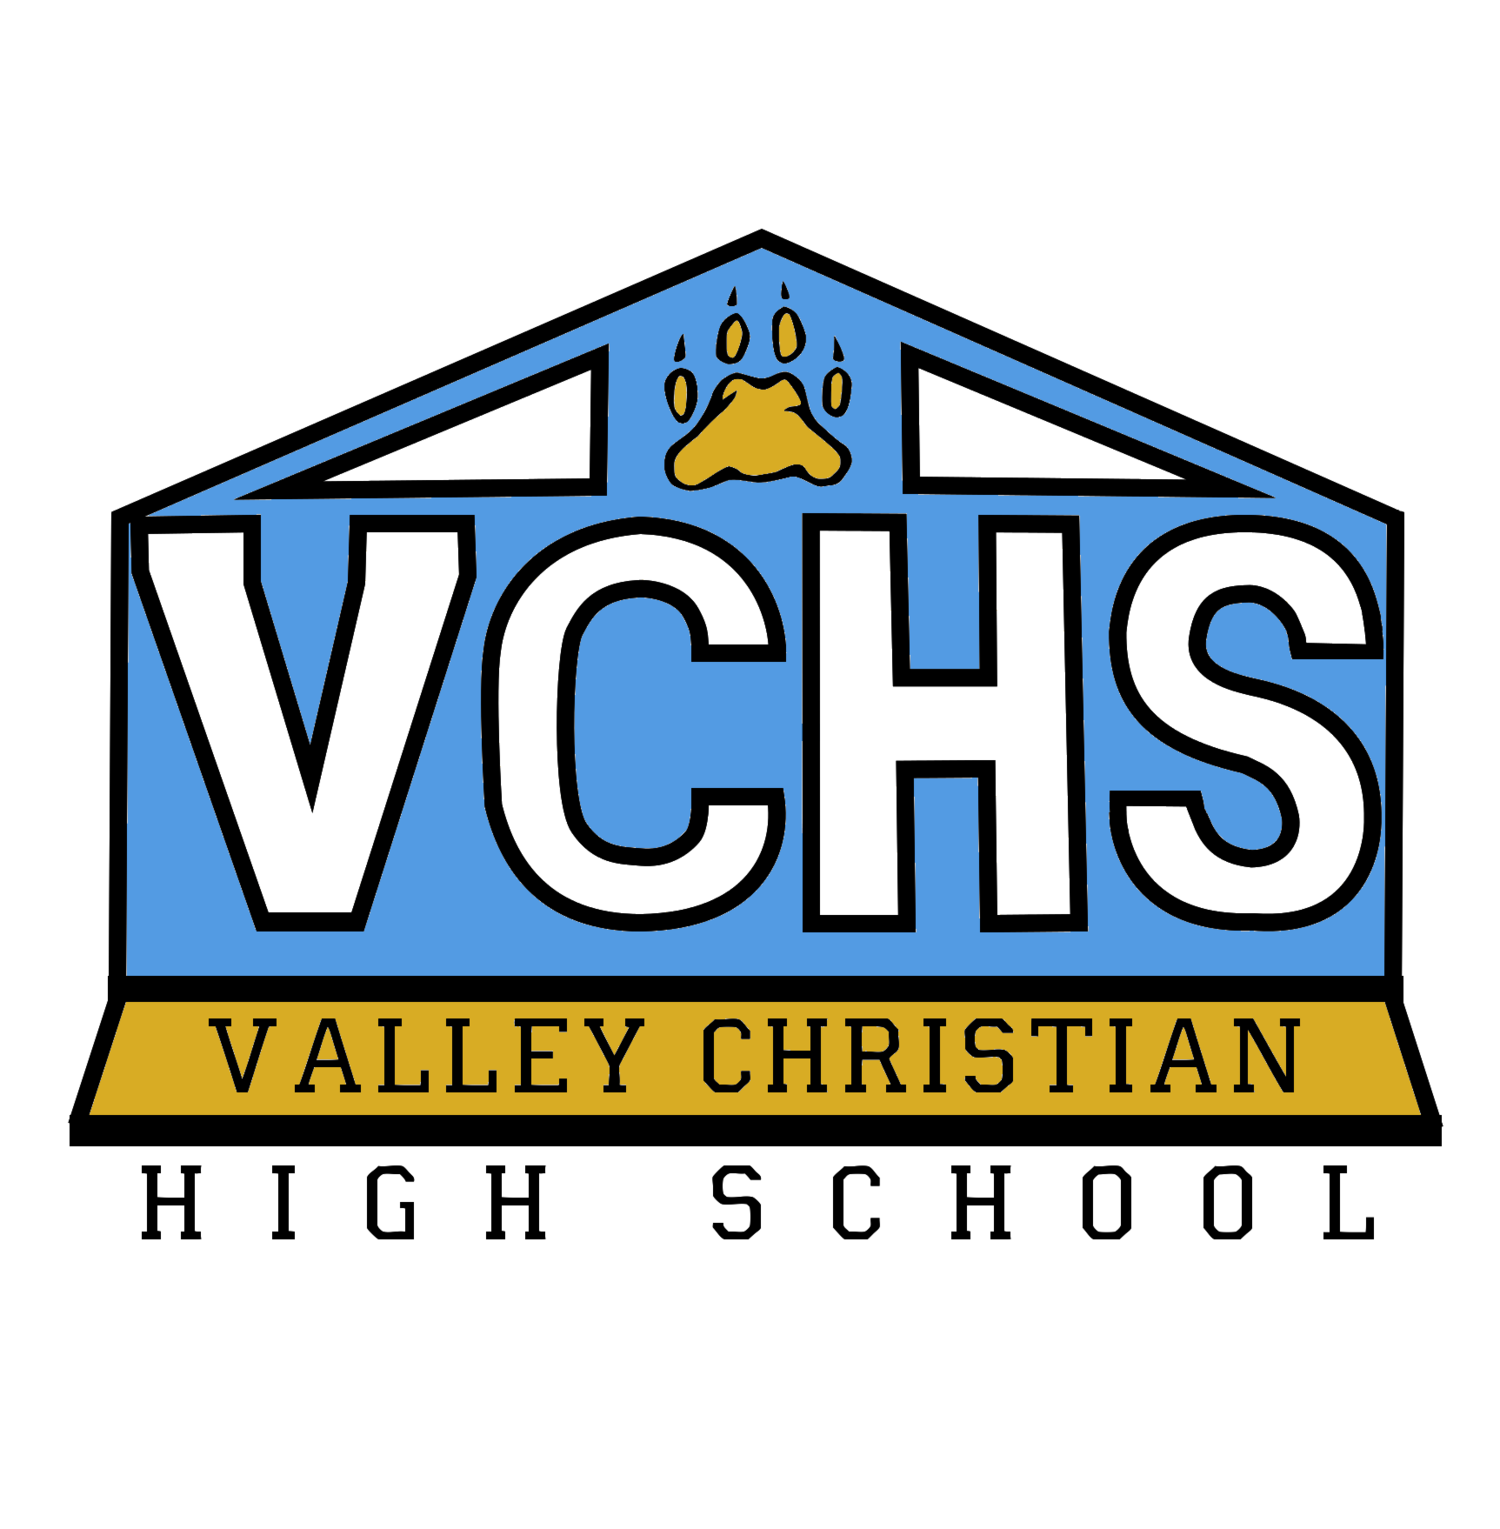 Valley Christian High School